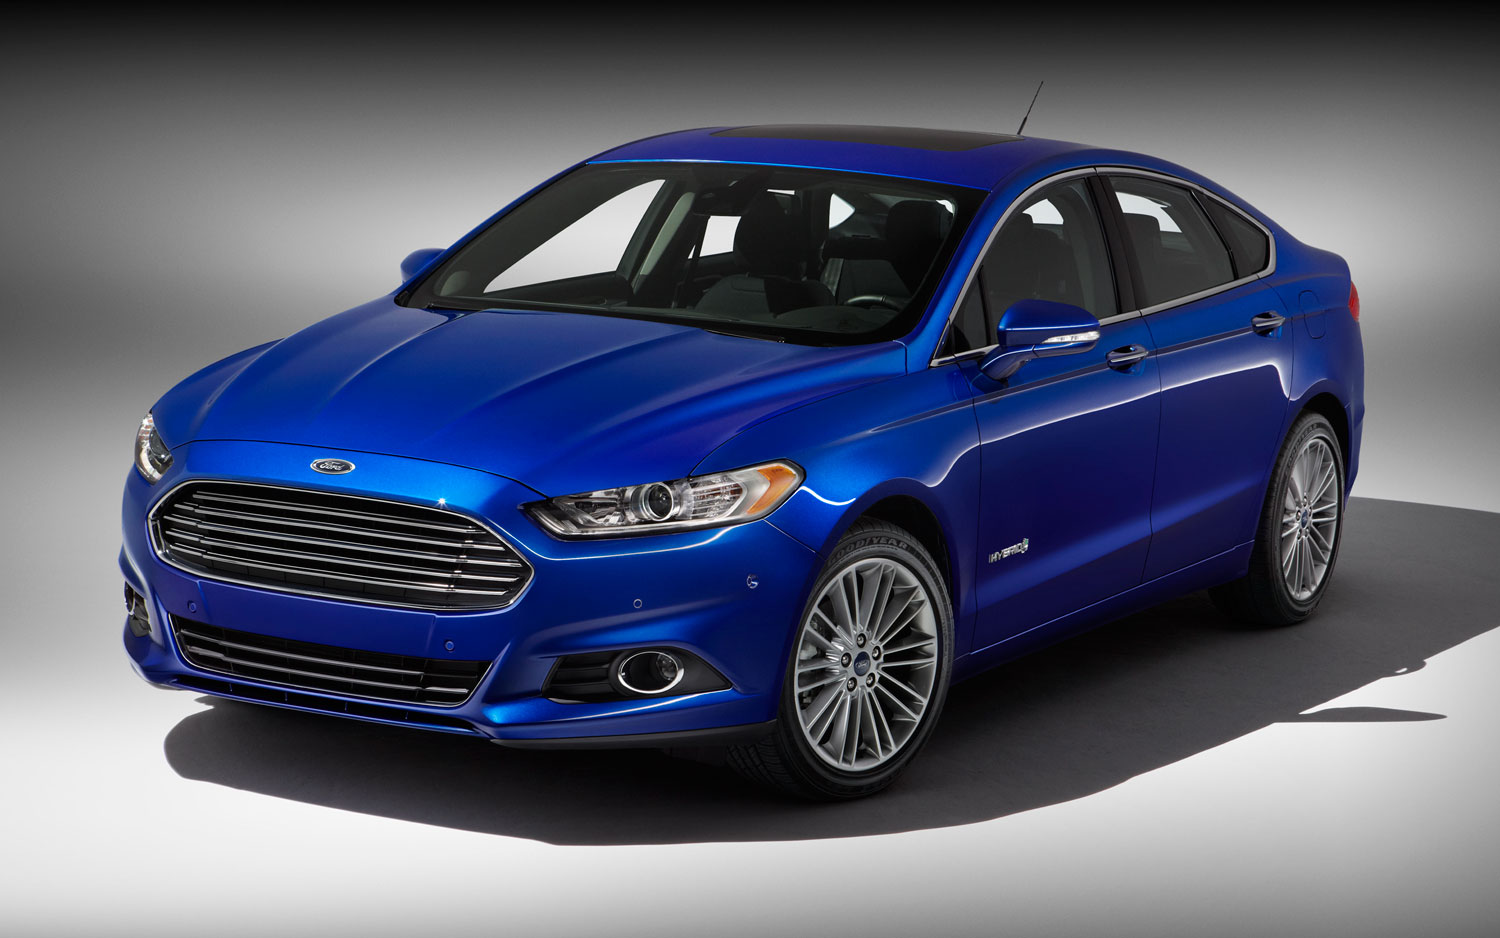 2013 ford fusion hybrid titanium priced at 32995 same as fusion ecoboost awd